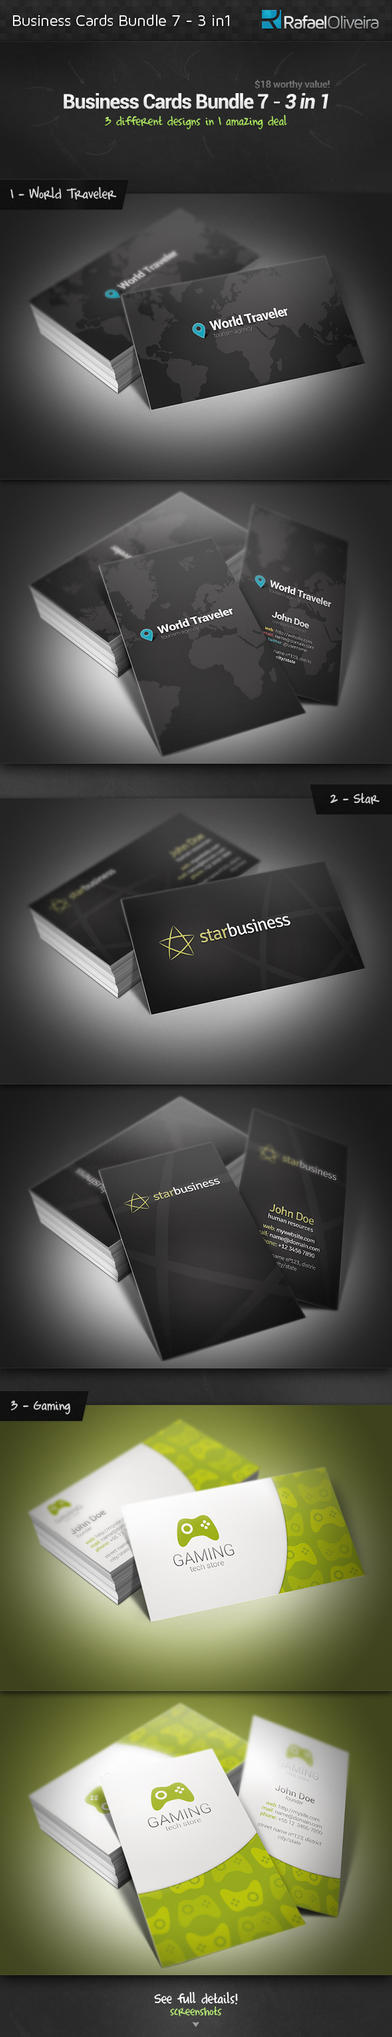 Business Cards Bundle 7 - 3 in 1 by Rafael-Olivra